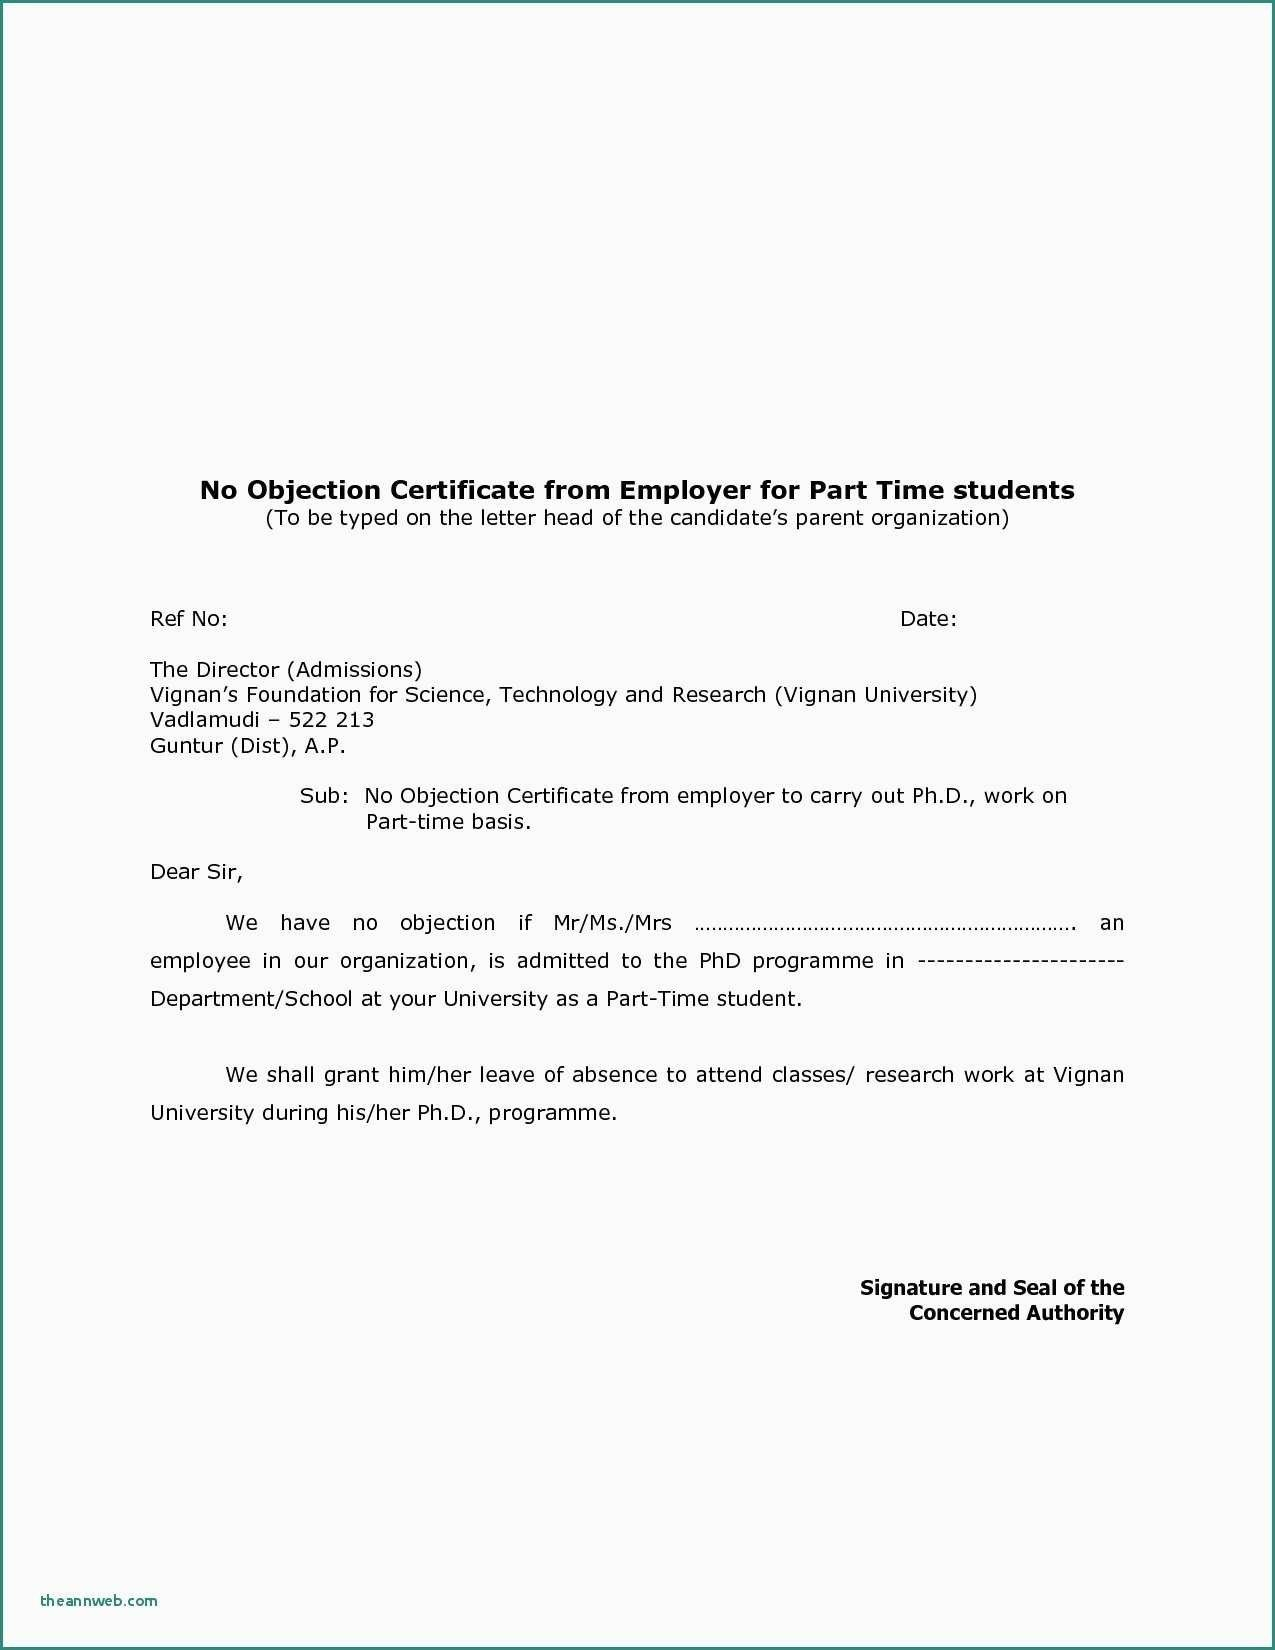 New No Objection Certificate Request Letter License Driving